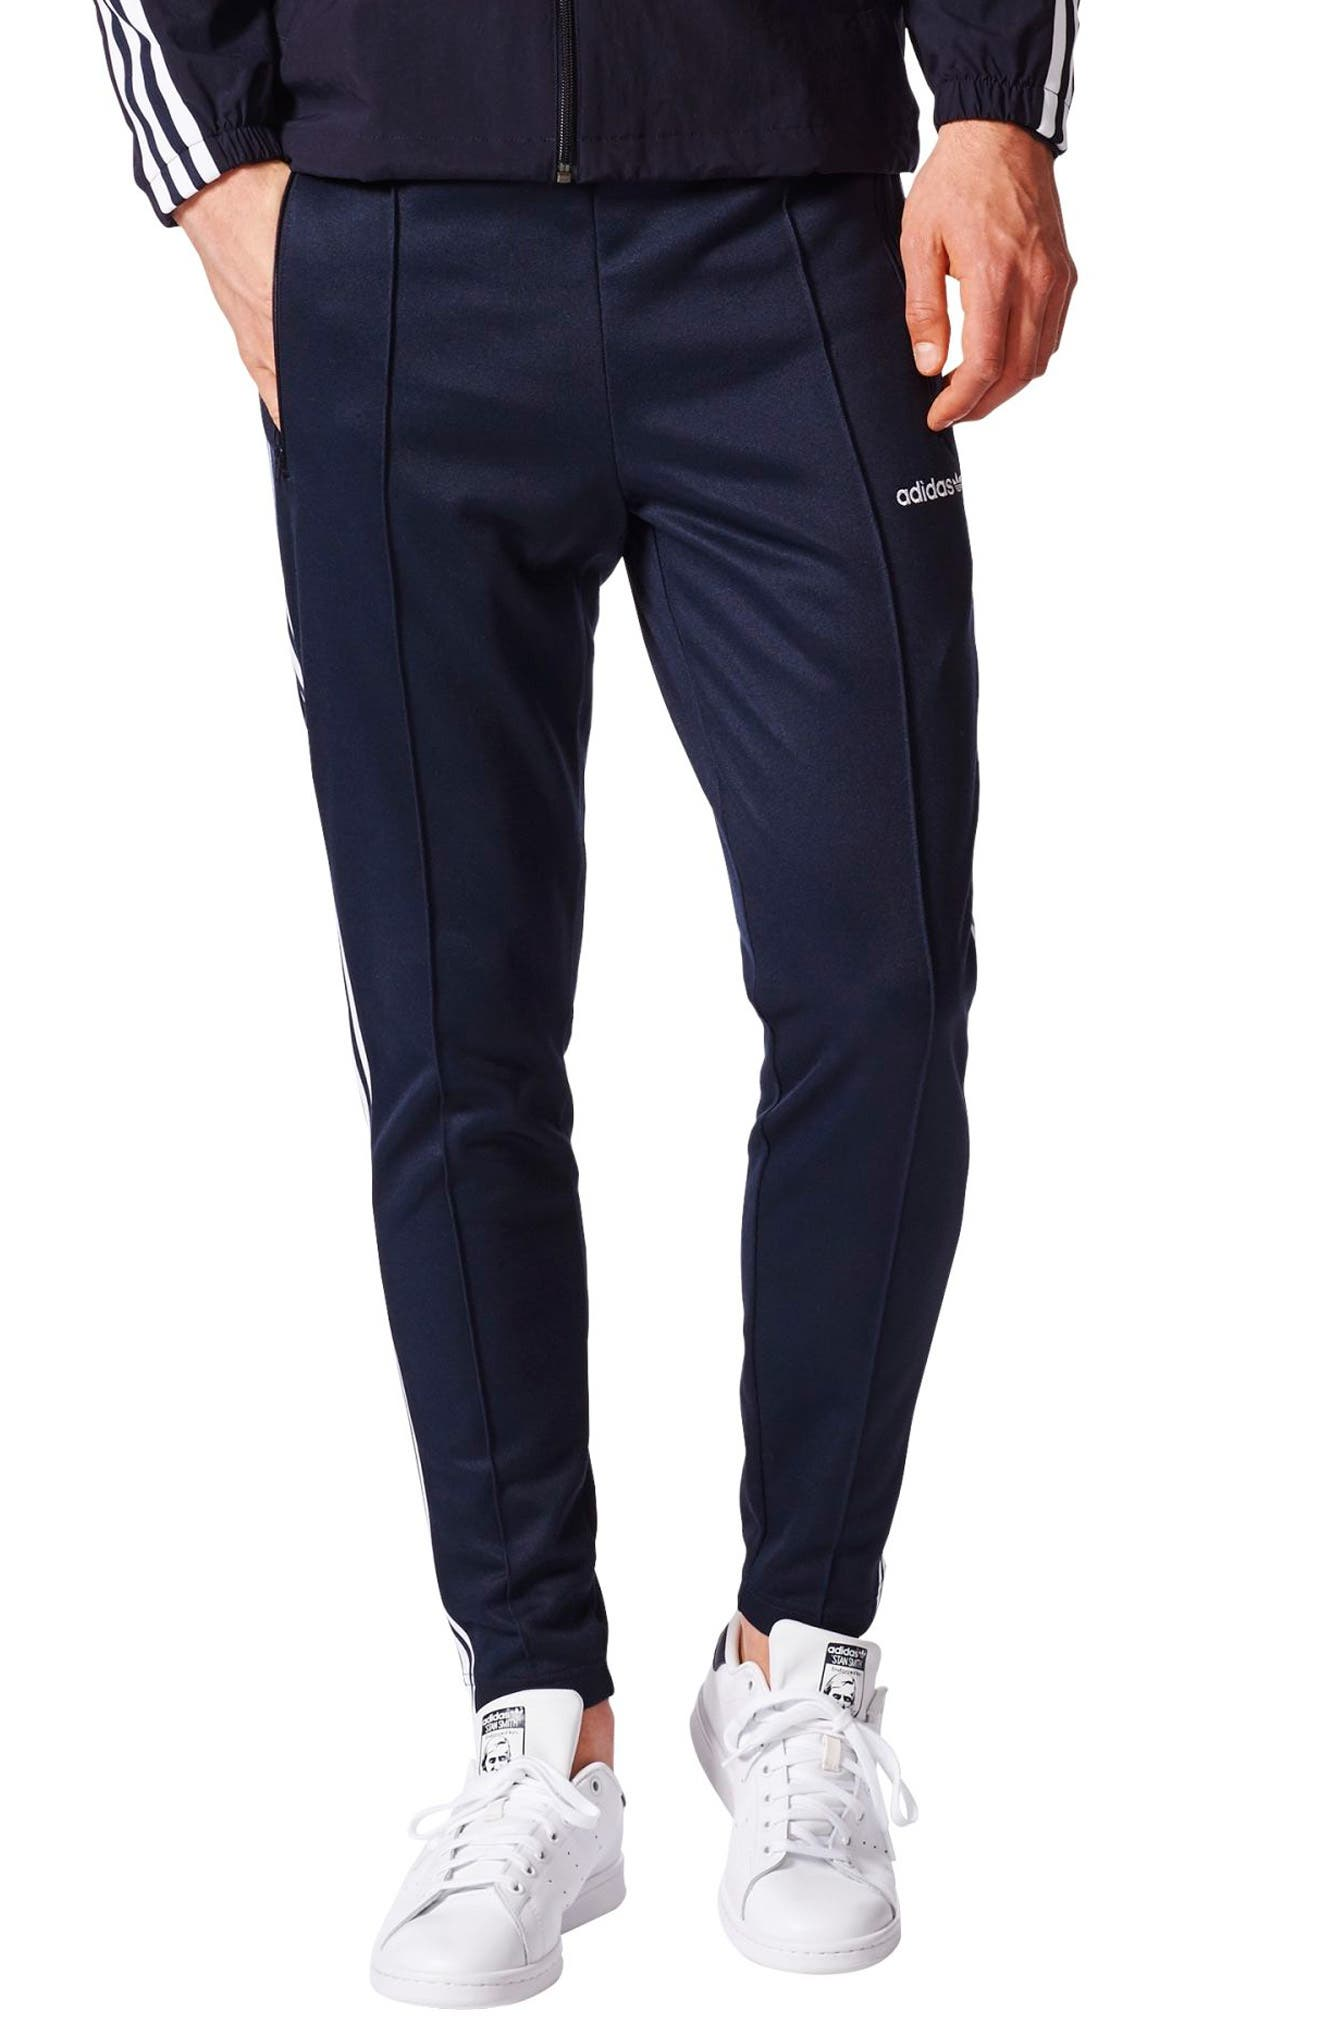 Originals Beckenbauer Track Pants,                         Main,                         color, 408